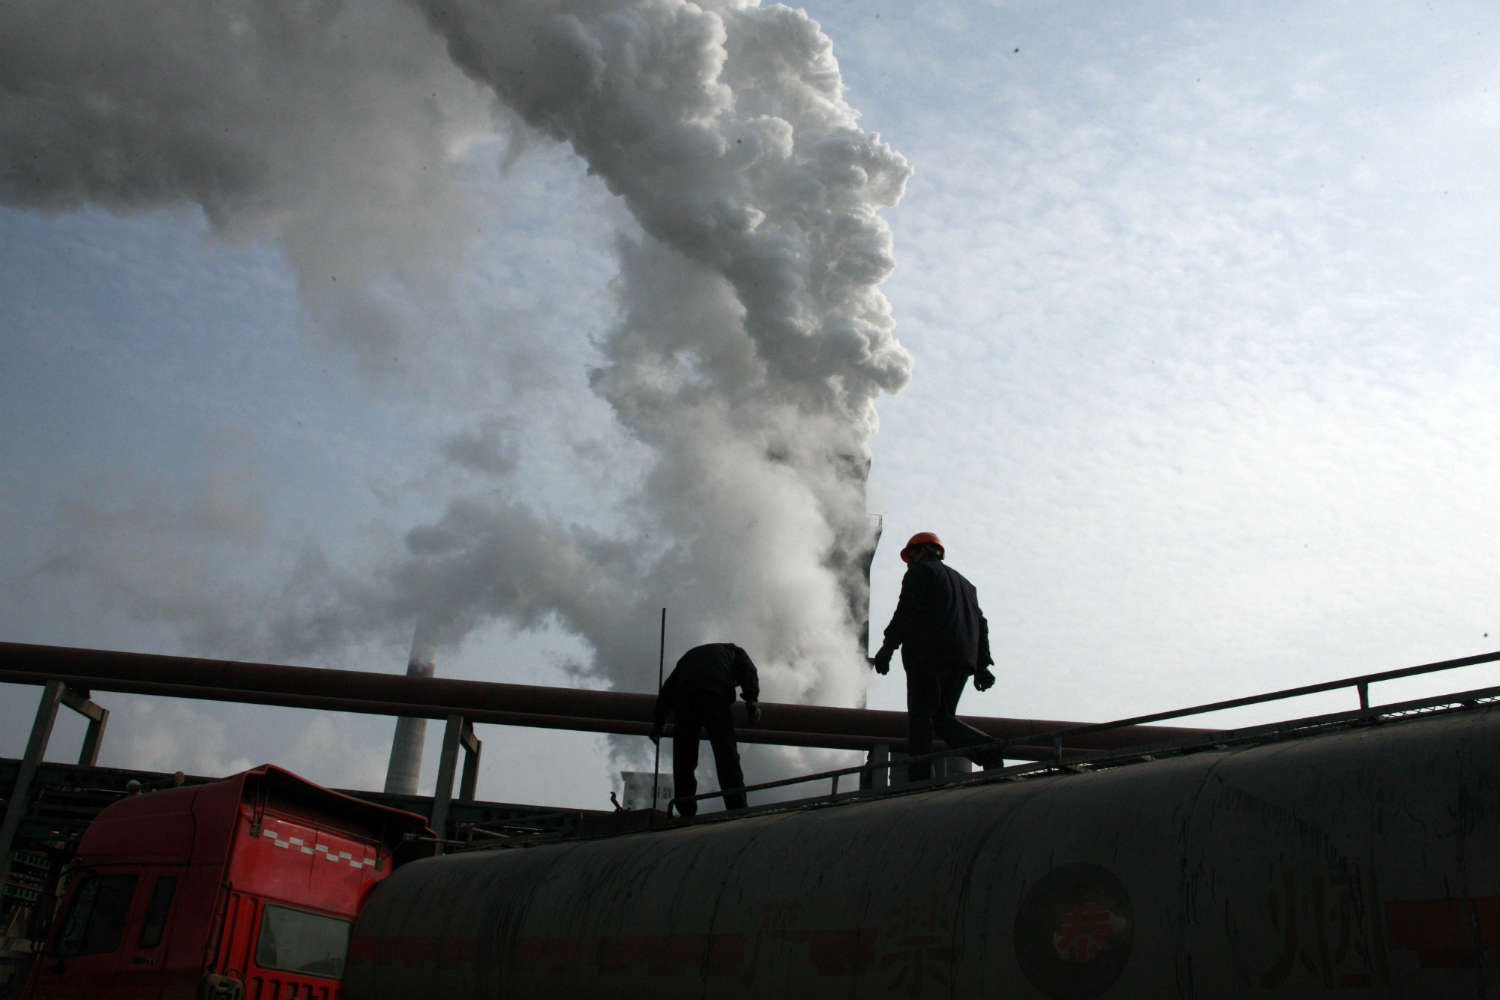 Coal powers China today, but that may be changing